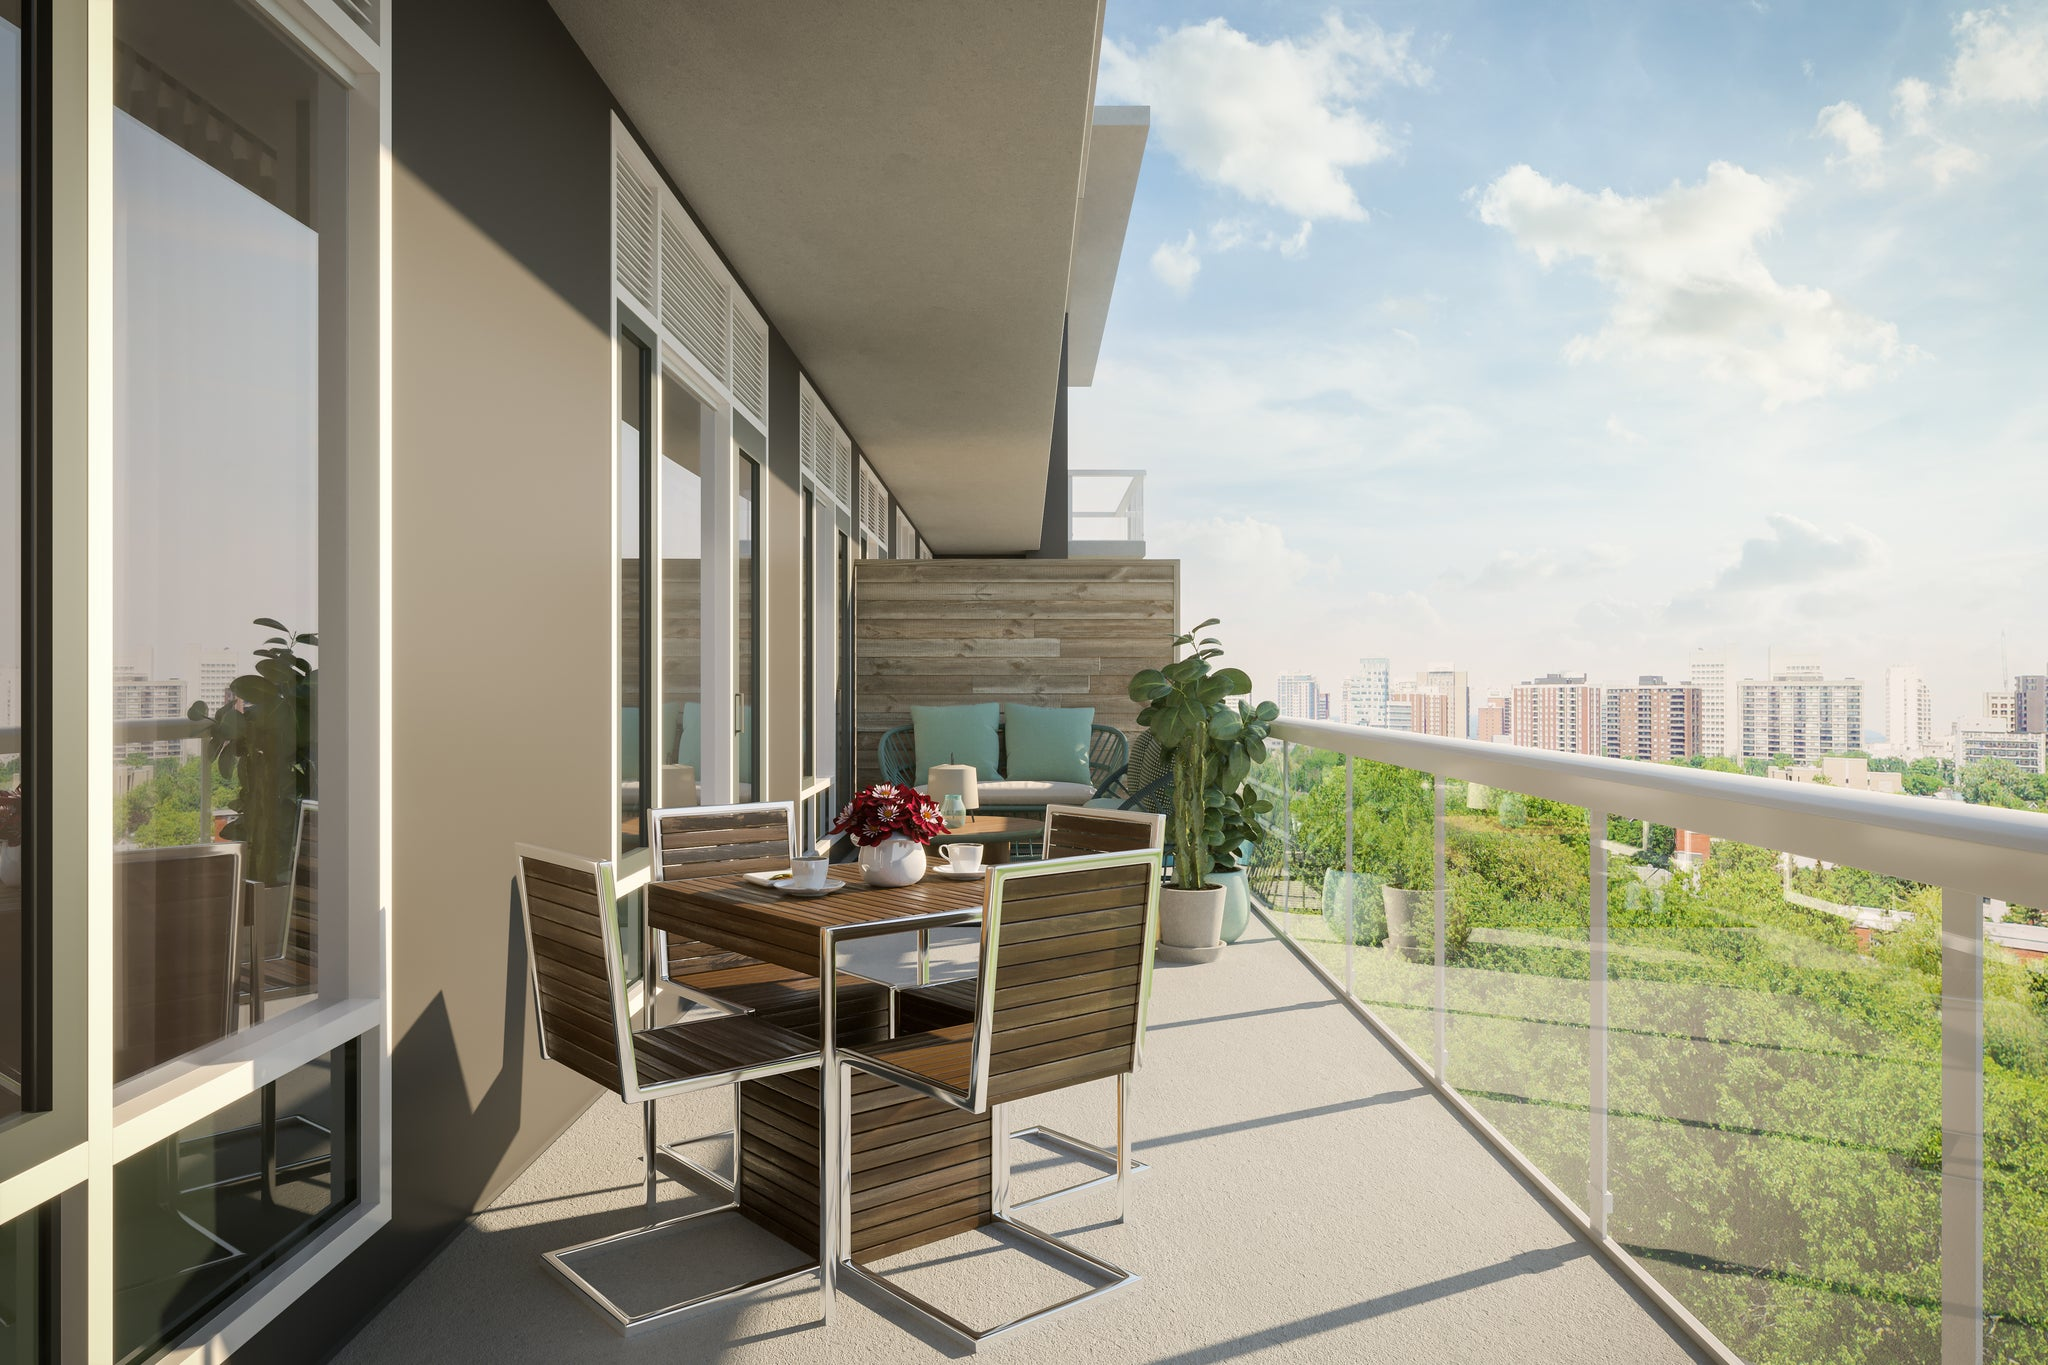 Condo 3D rendered design of outdoor patio space